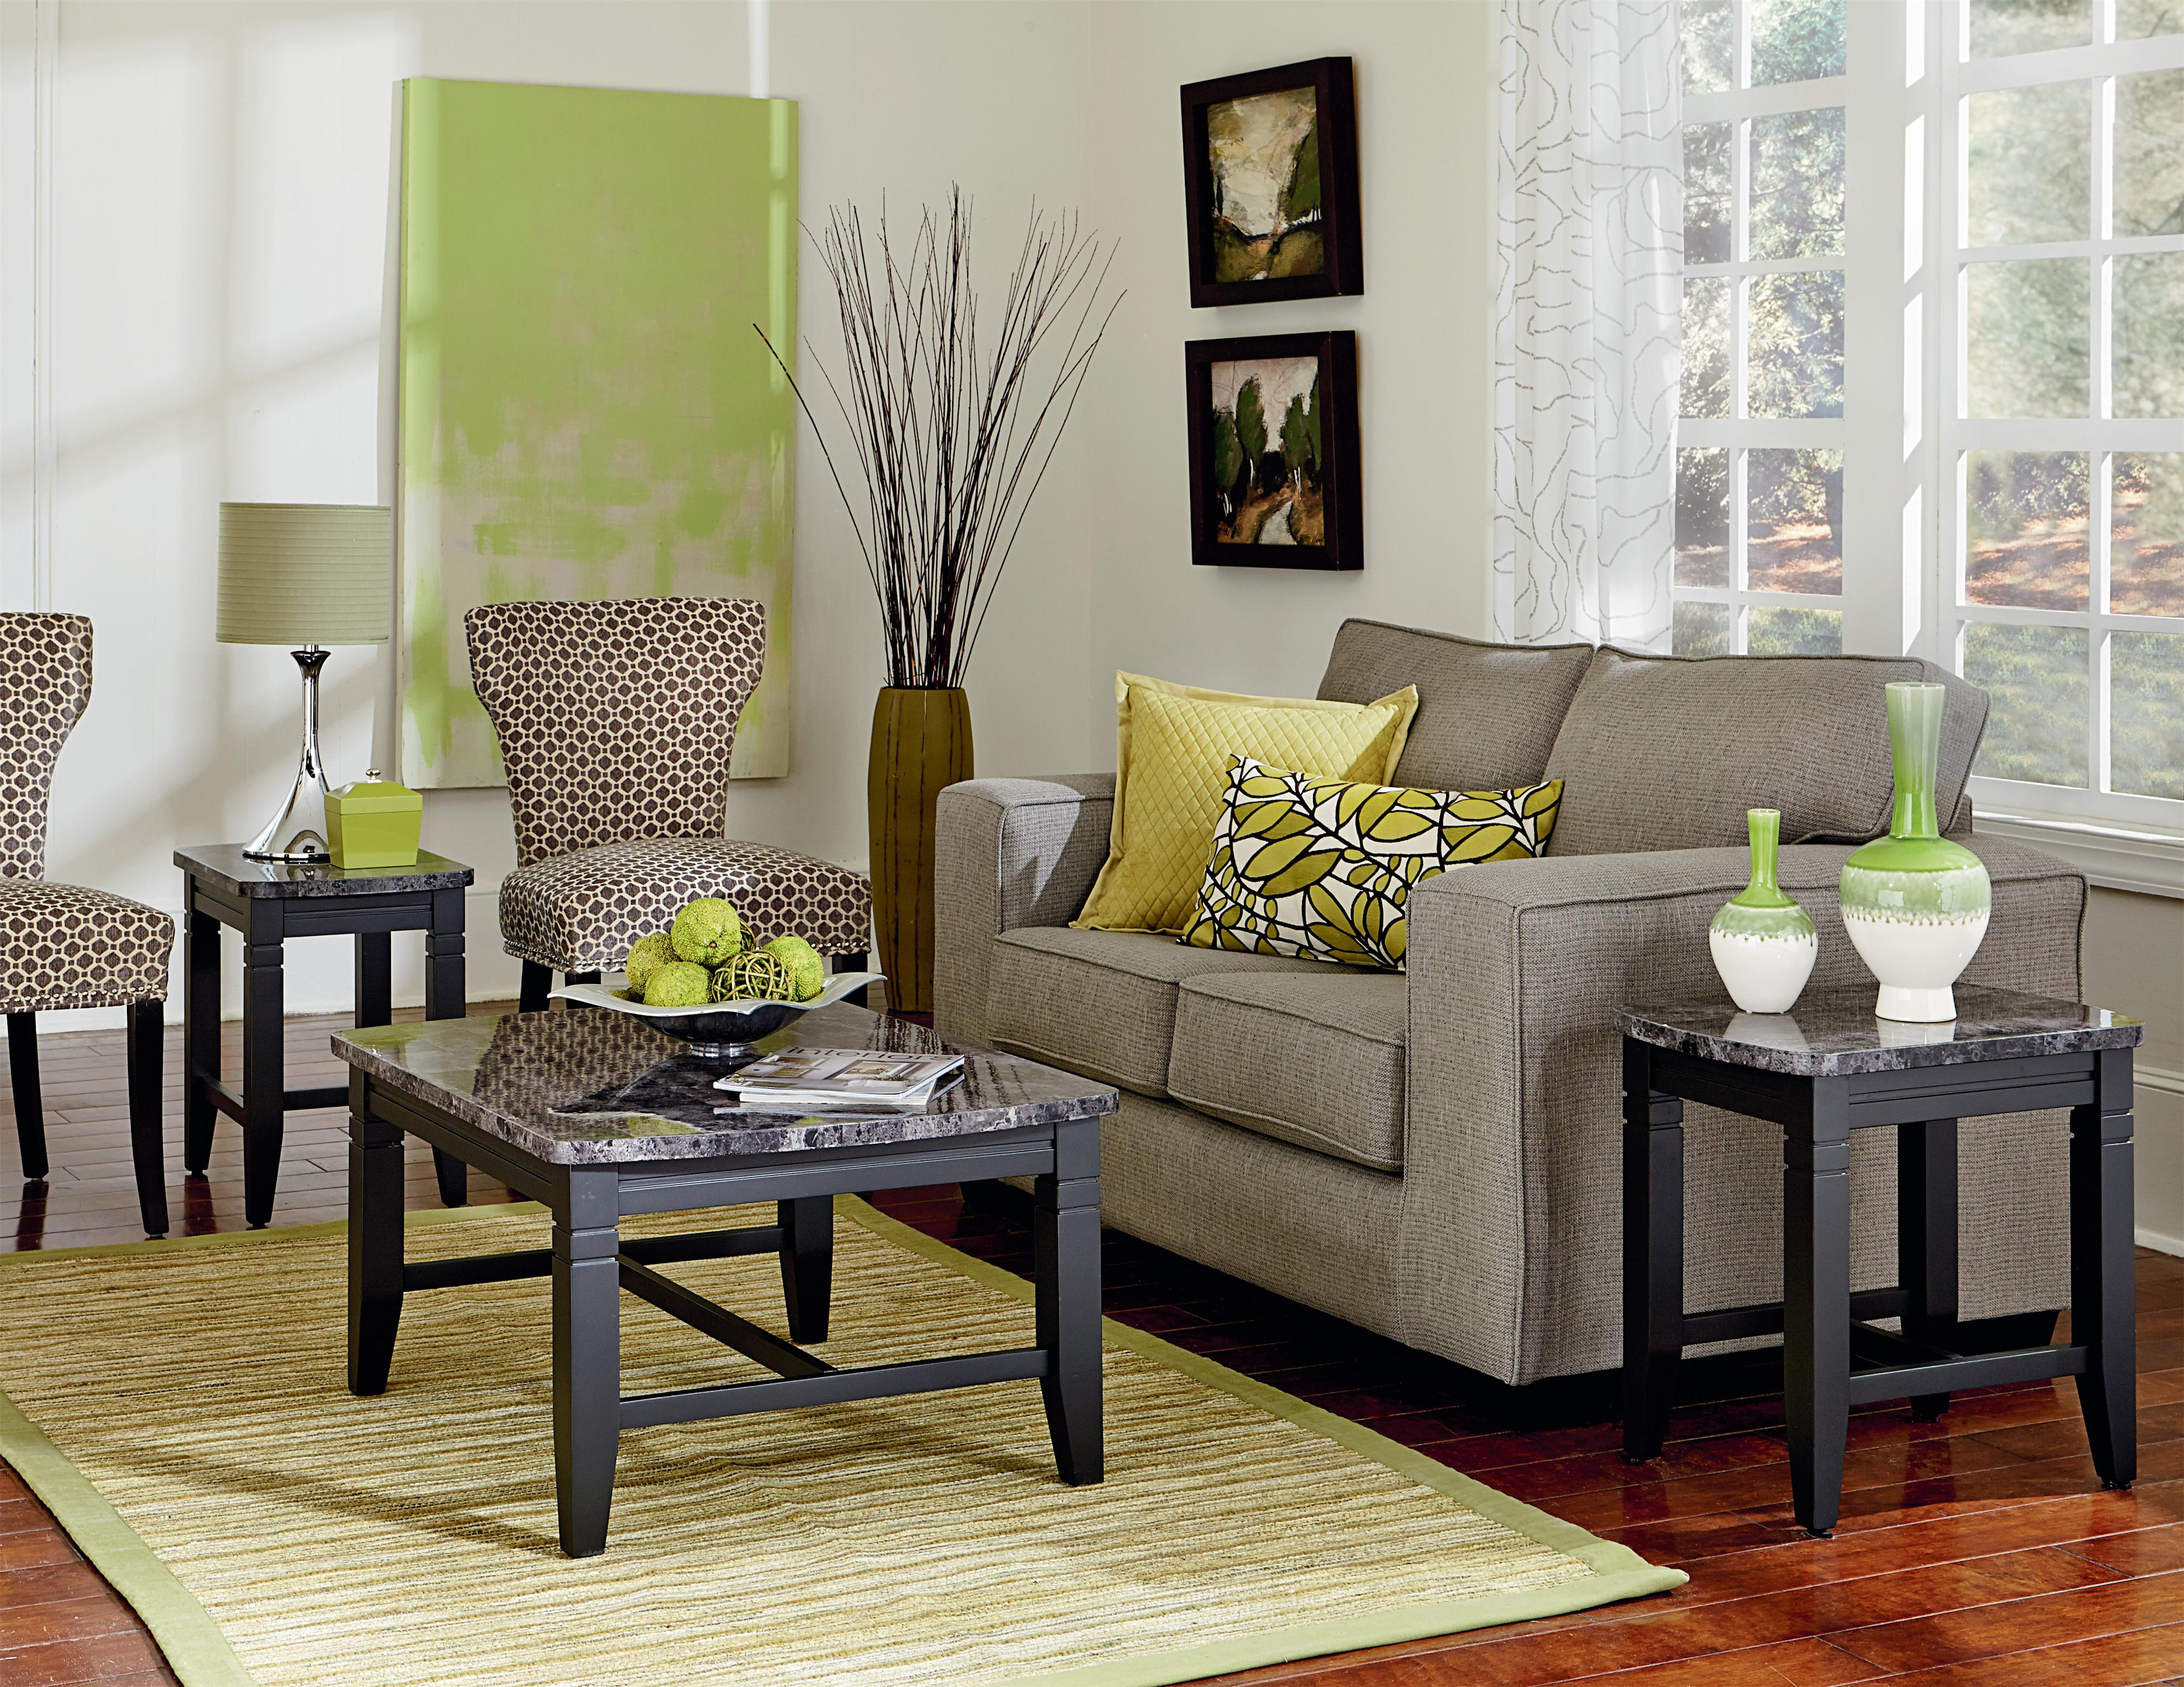 Standard Furniture Boroughs 3 Piece Occasional Table Set - Item Number: 28323